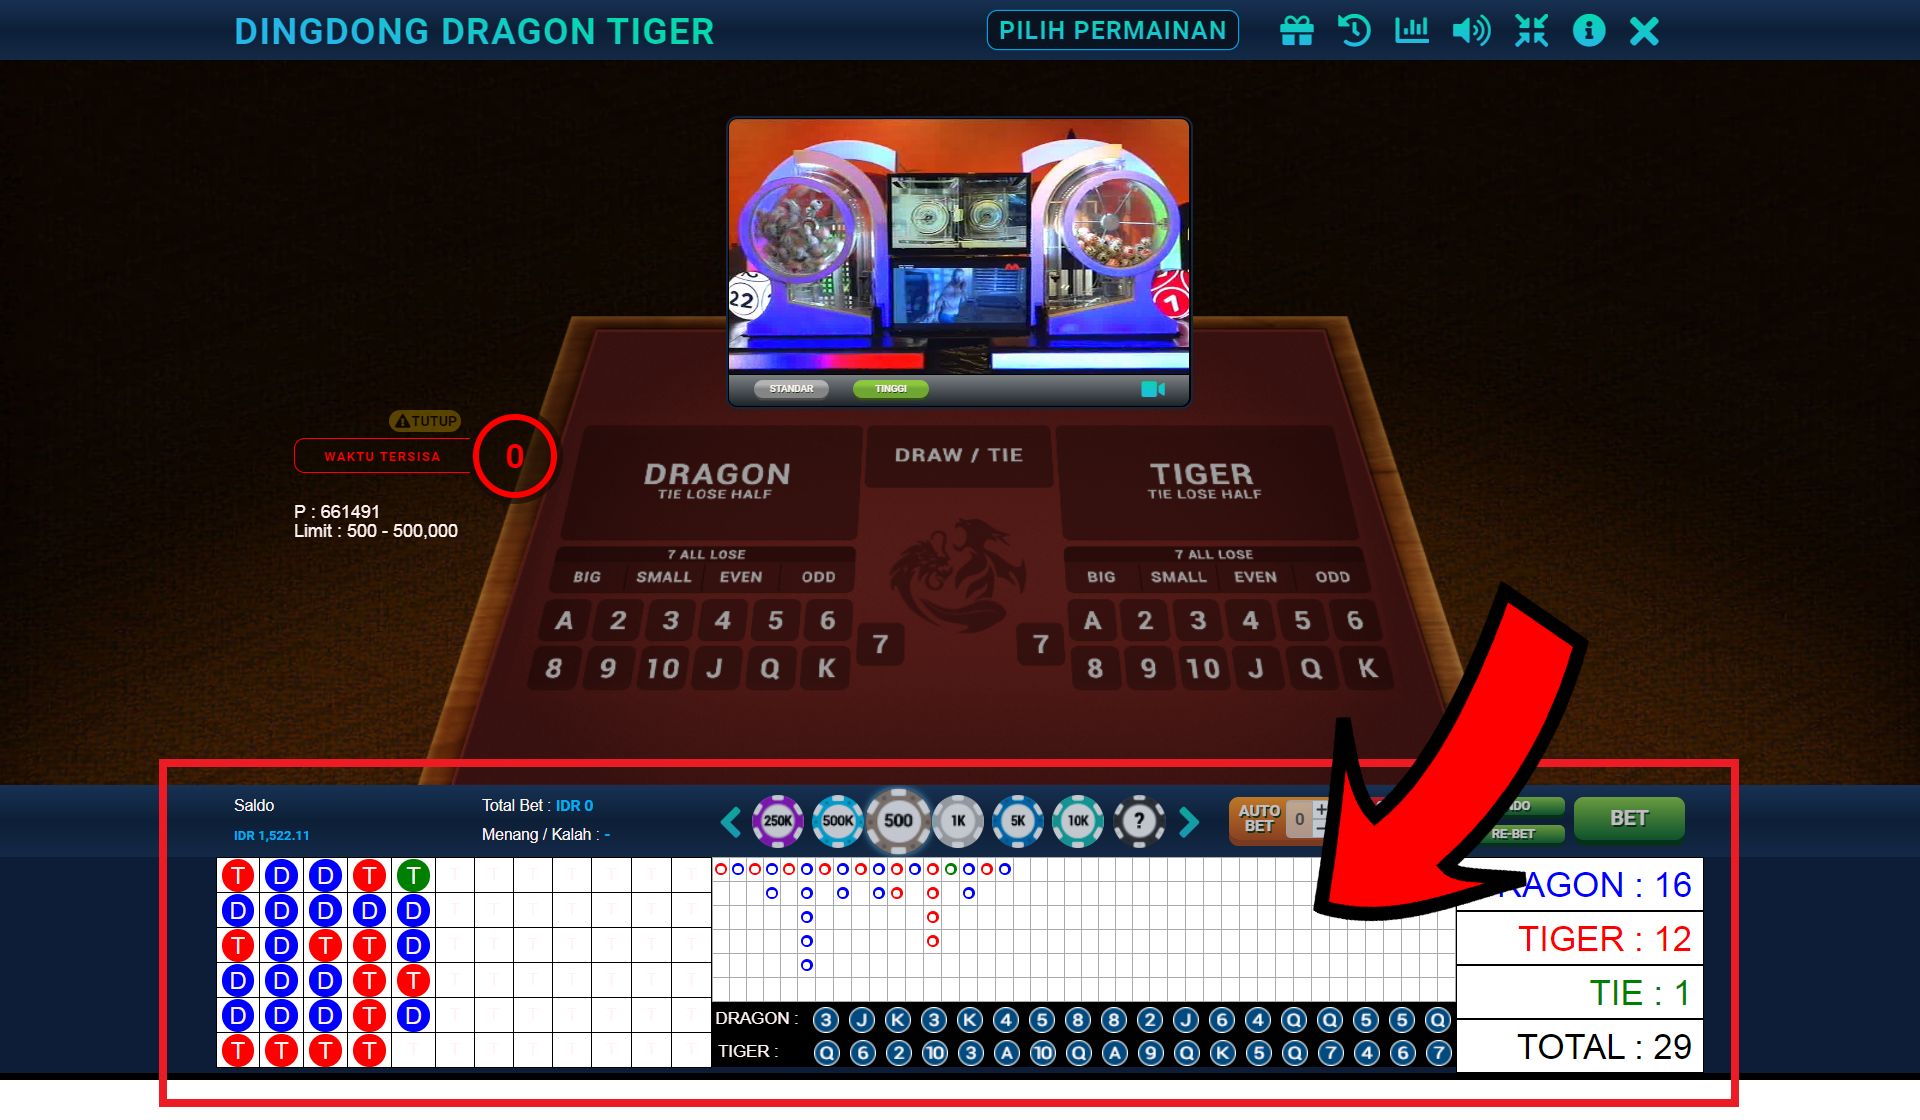 Main dan Menang Dingdong Dragon Tiger di AFATOGEL